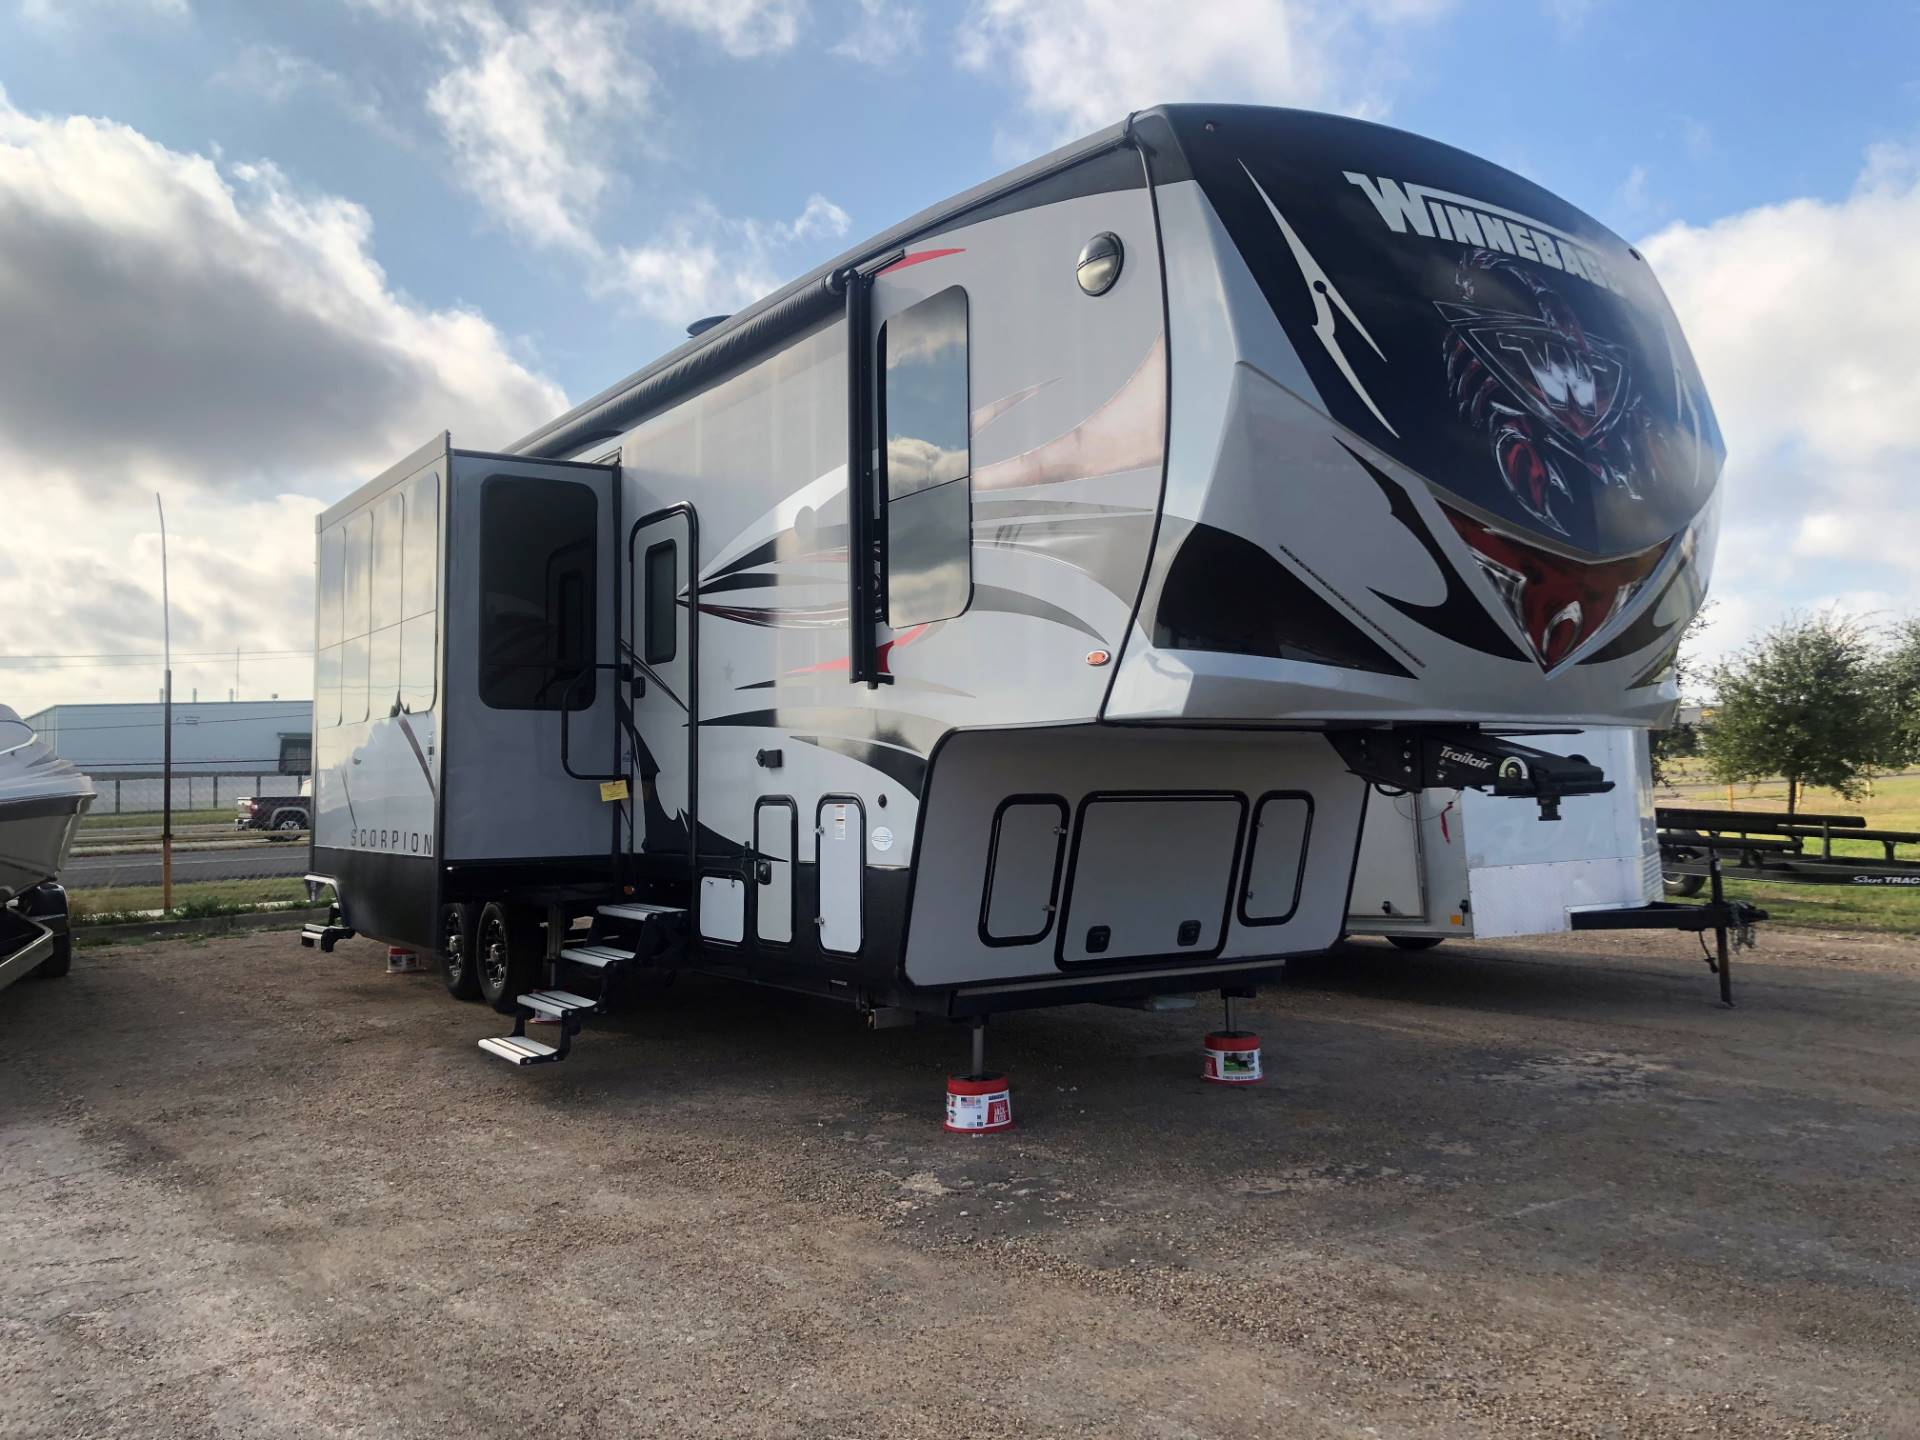 2017 winnebago scorpion toyhauler in Waco, Texas - Photo 3